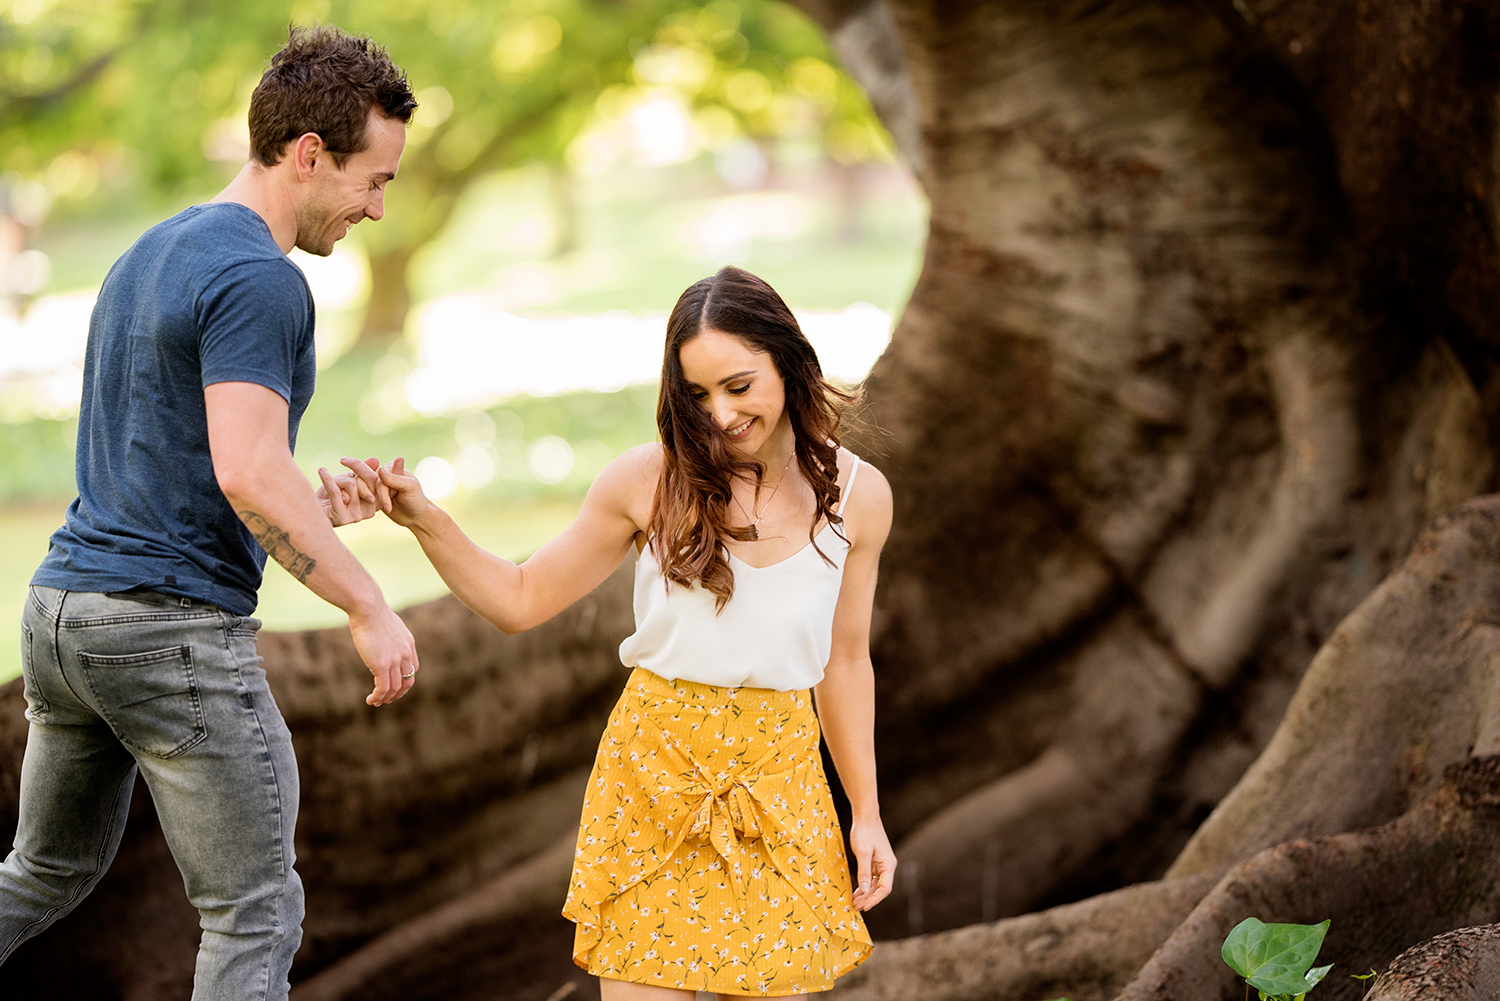 engagement photographer perth 02.jpg